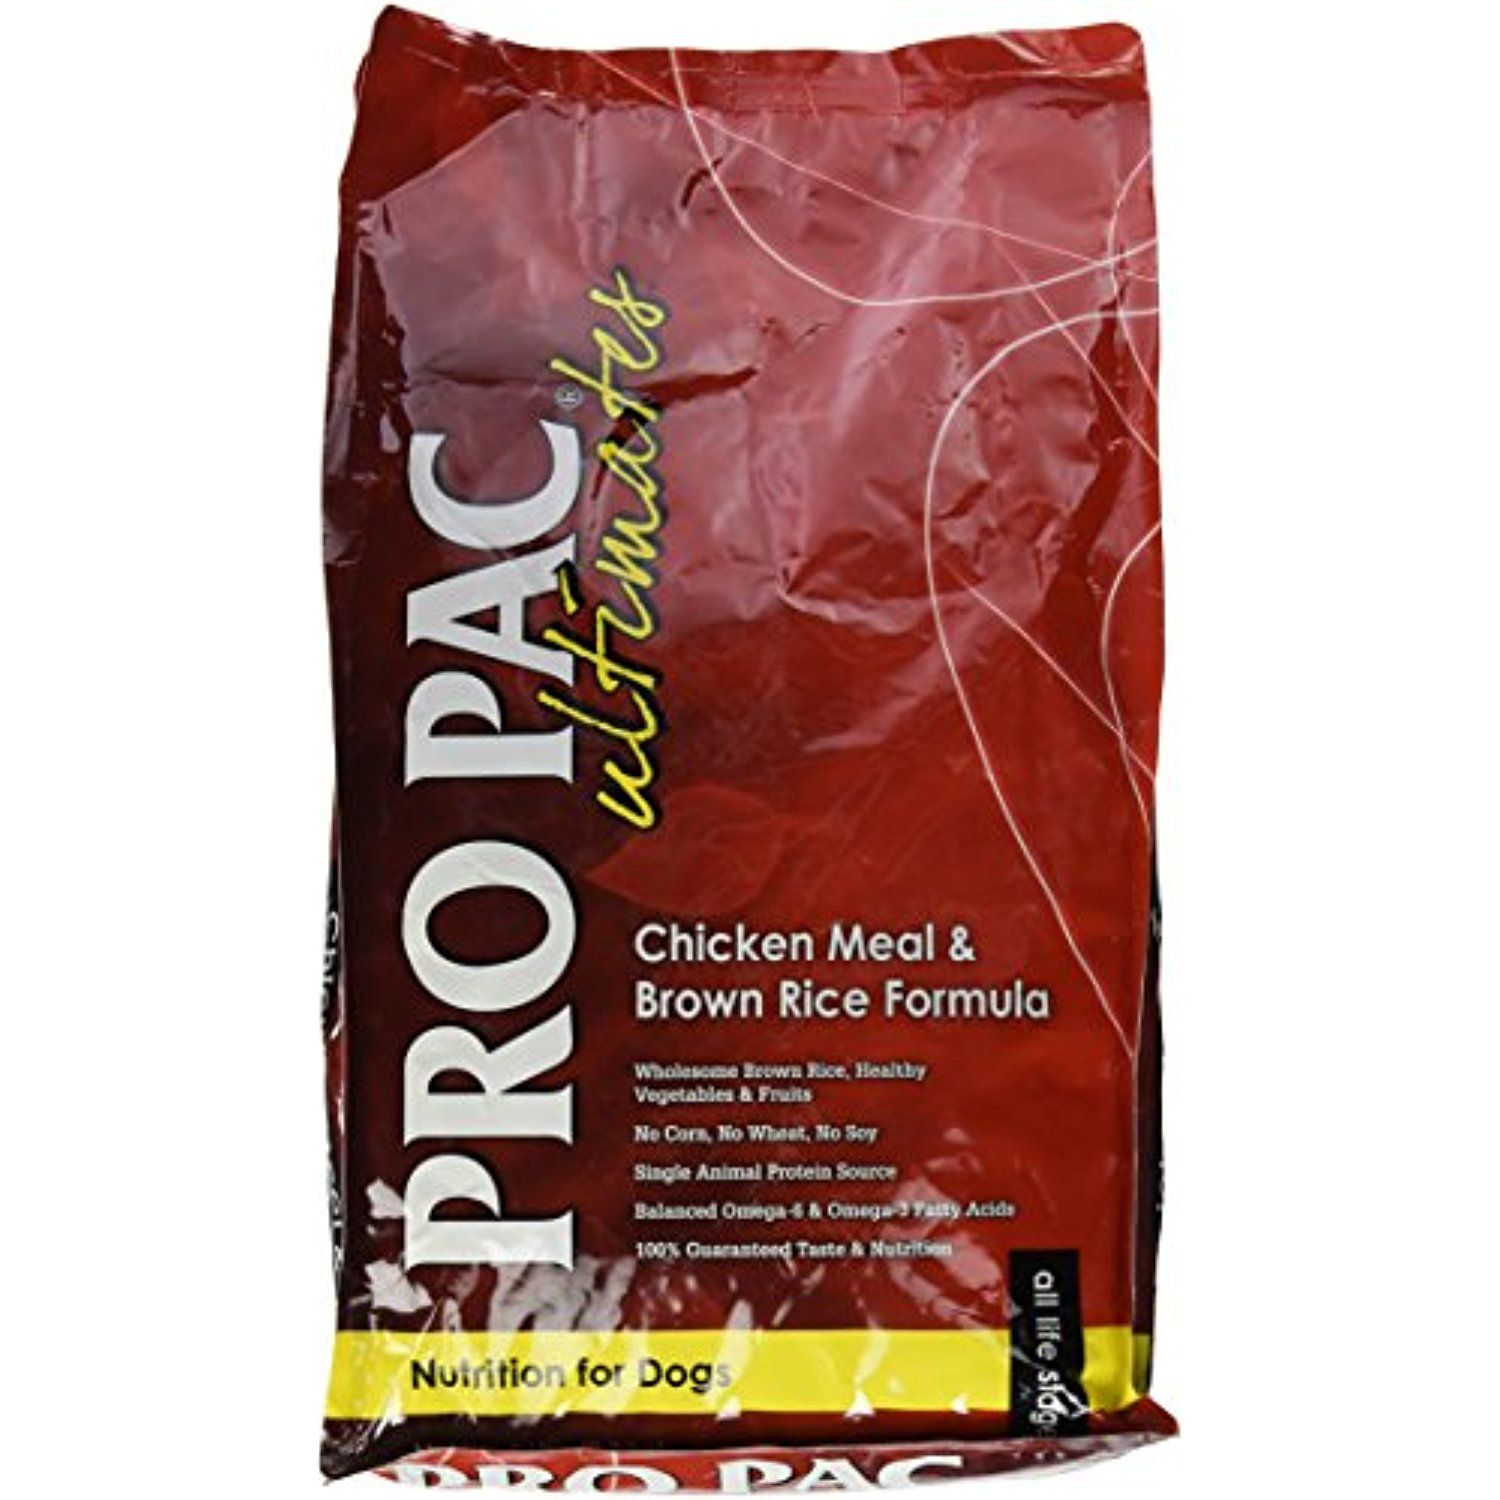 Pro pac puppy food large breed